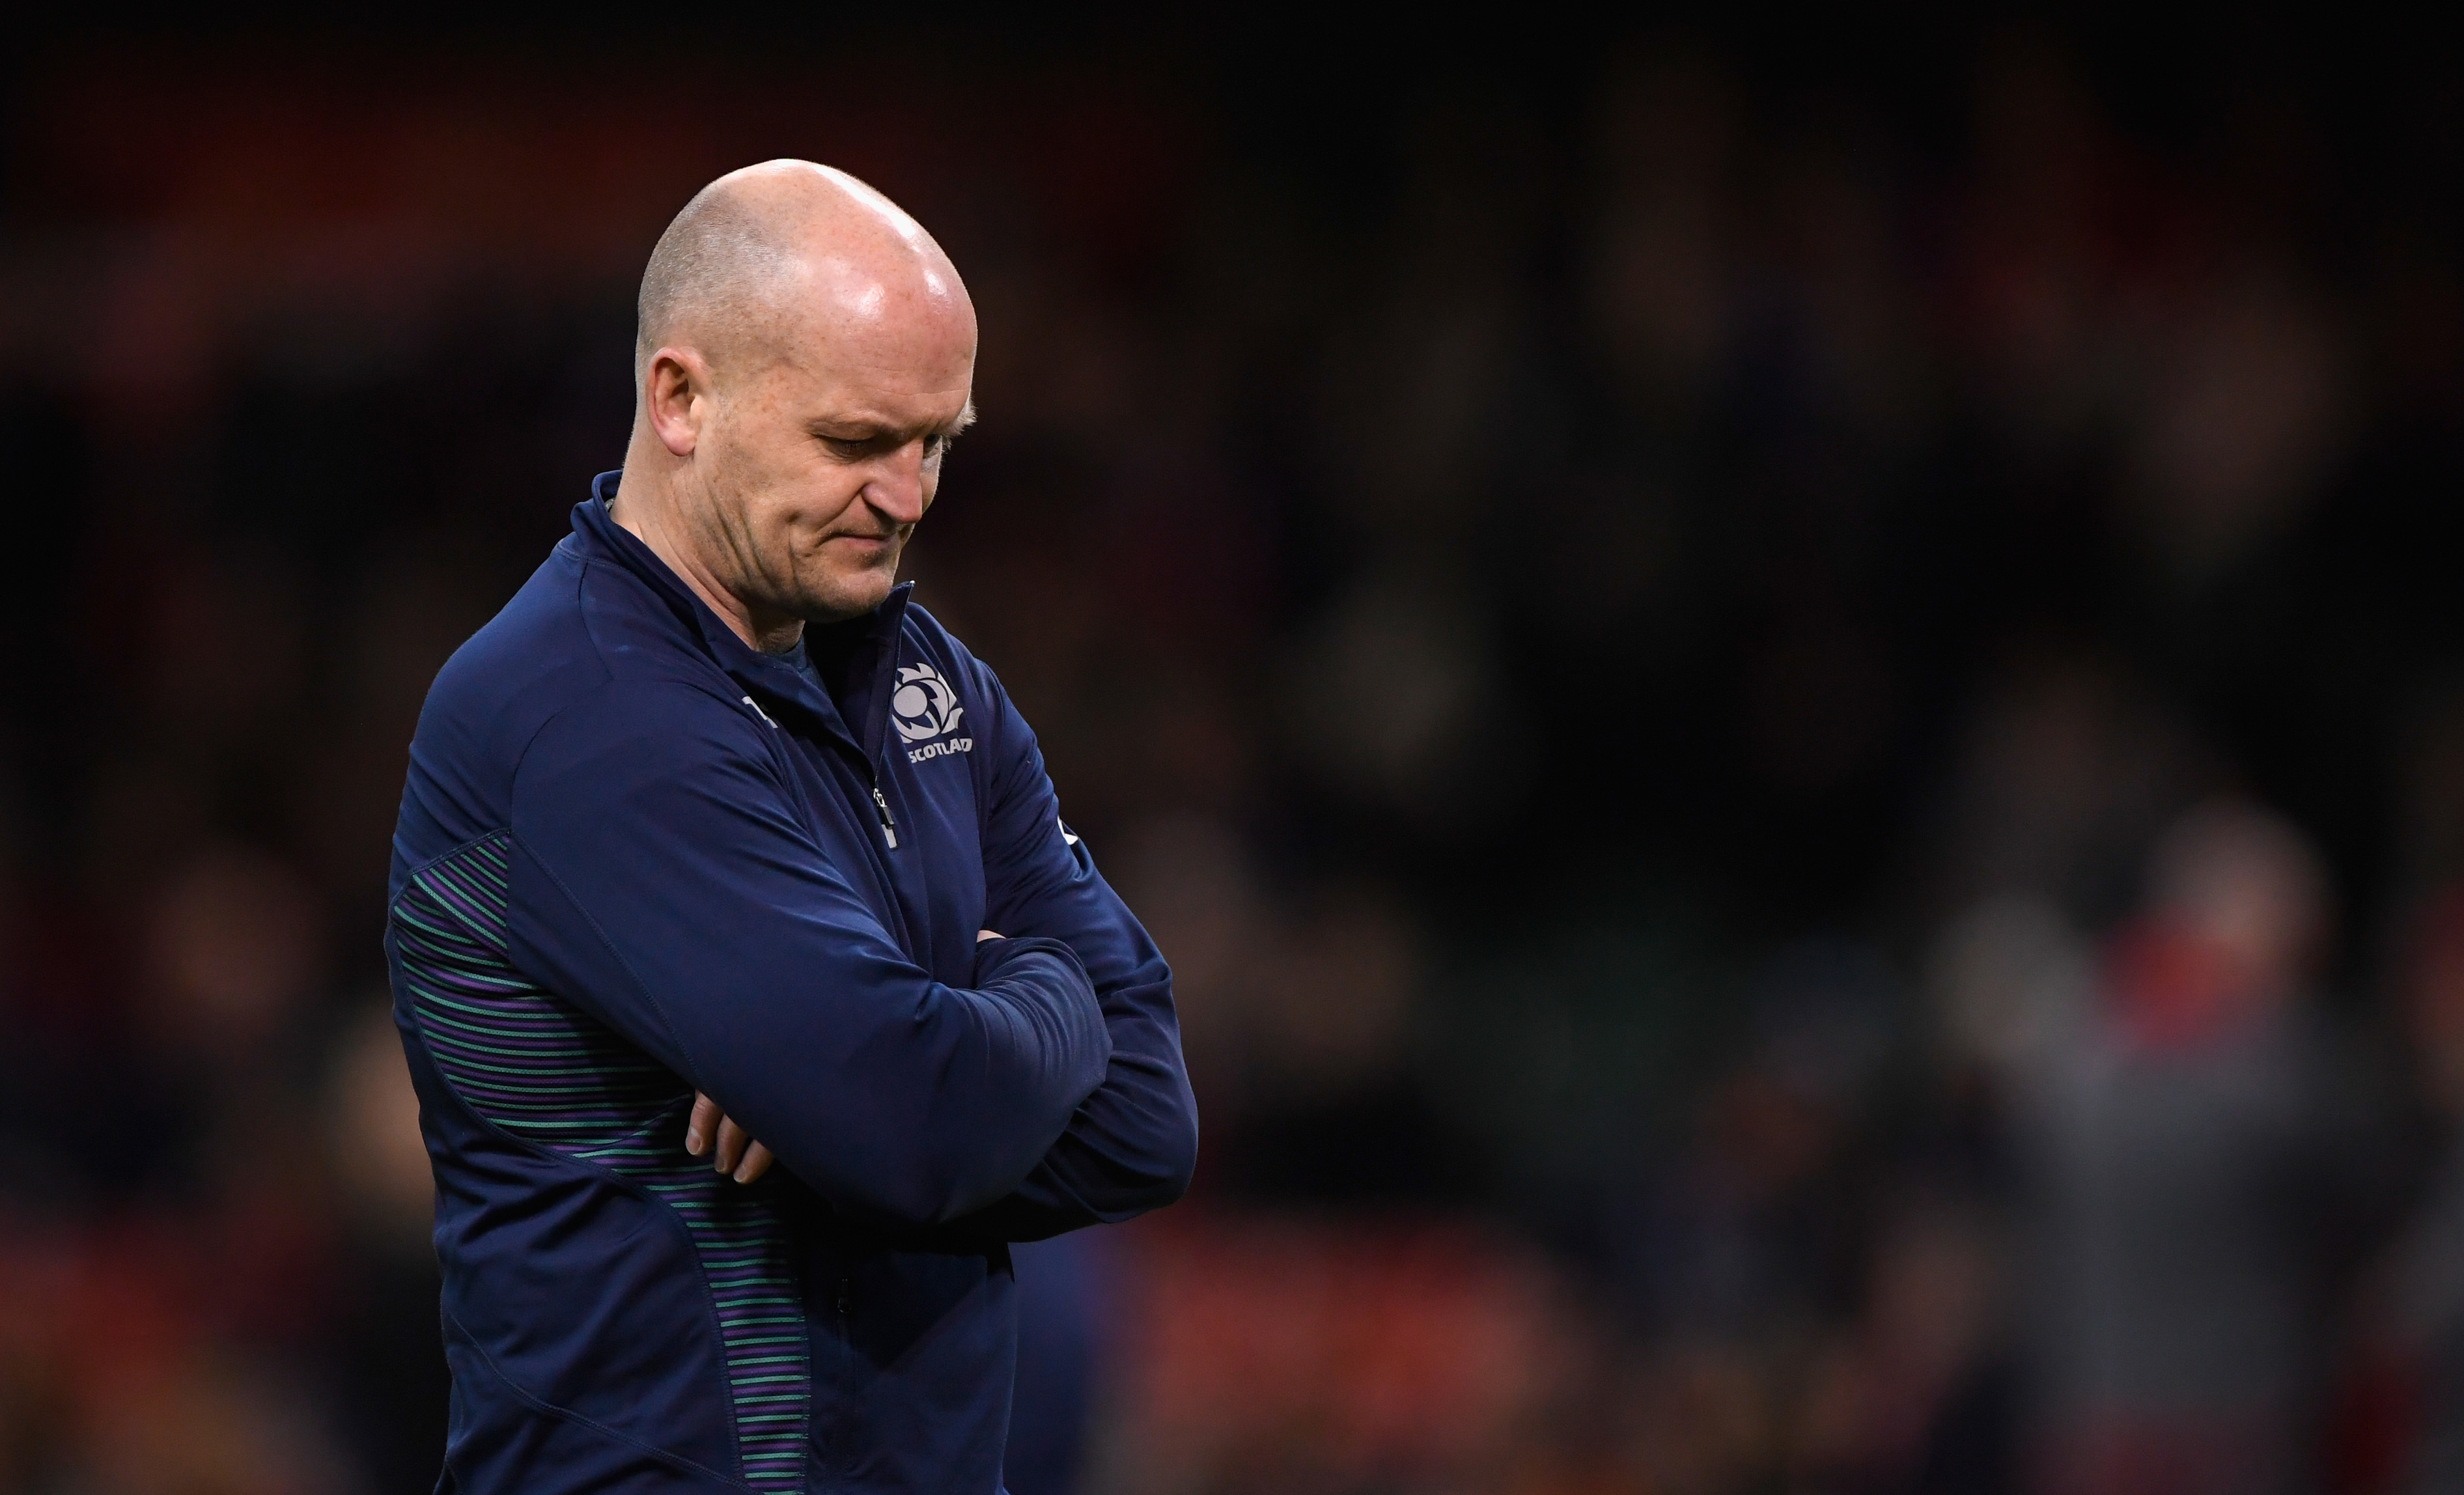 Scotland will stick to their high risk game, says head coach Gregor Townsend.